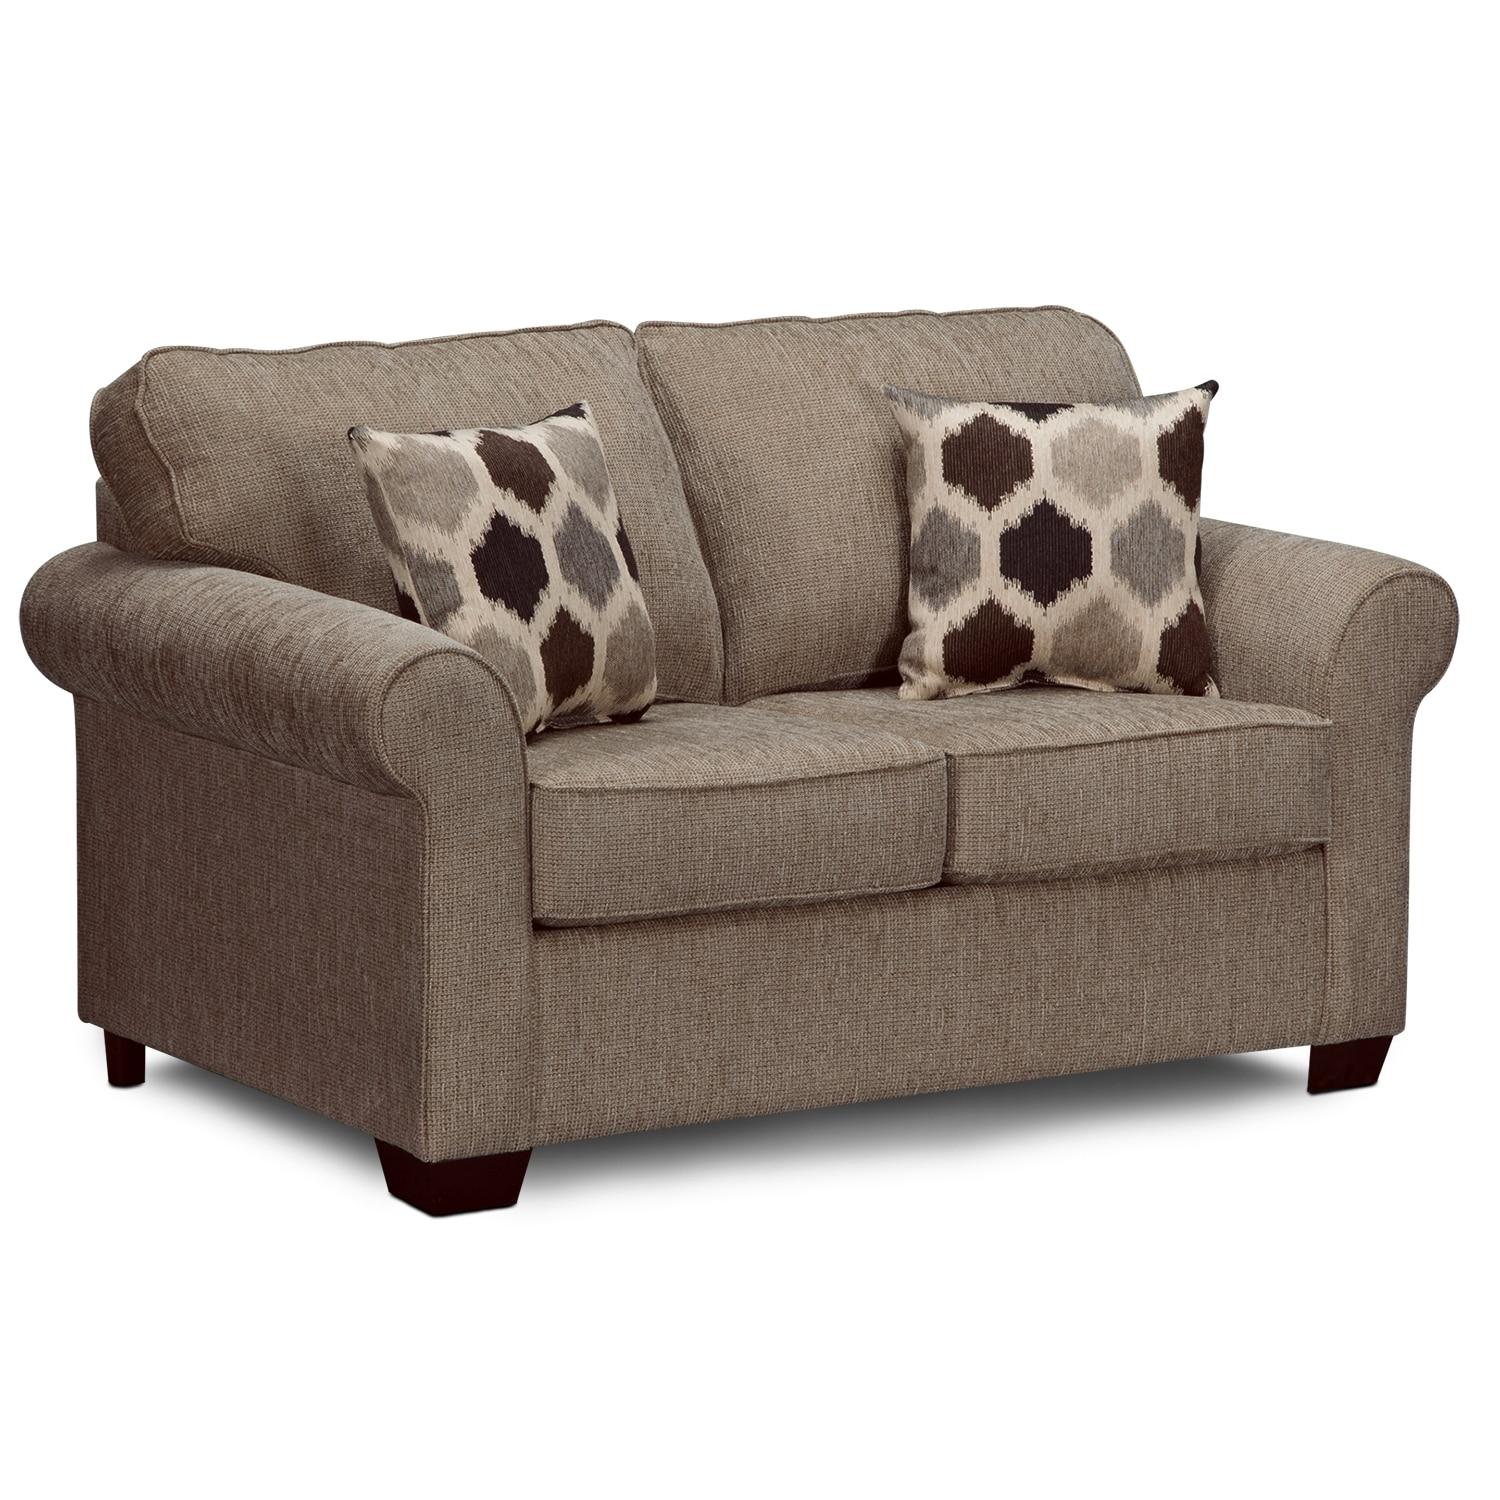 Fletcher upholstery twin sleeper sofa value city furniture Sofa sleeper loveseat